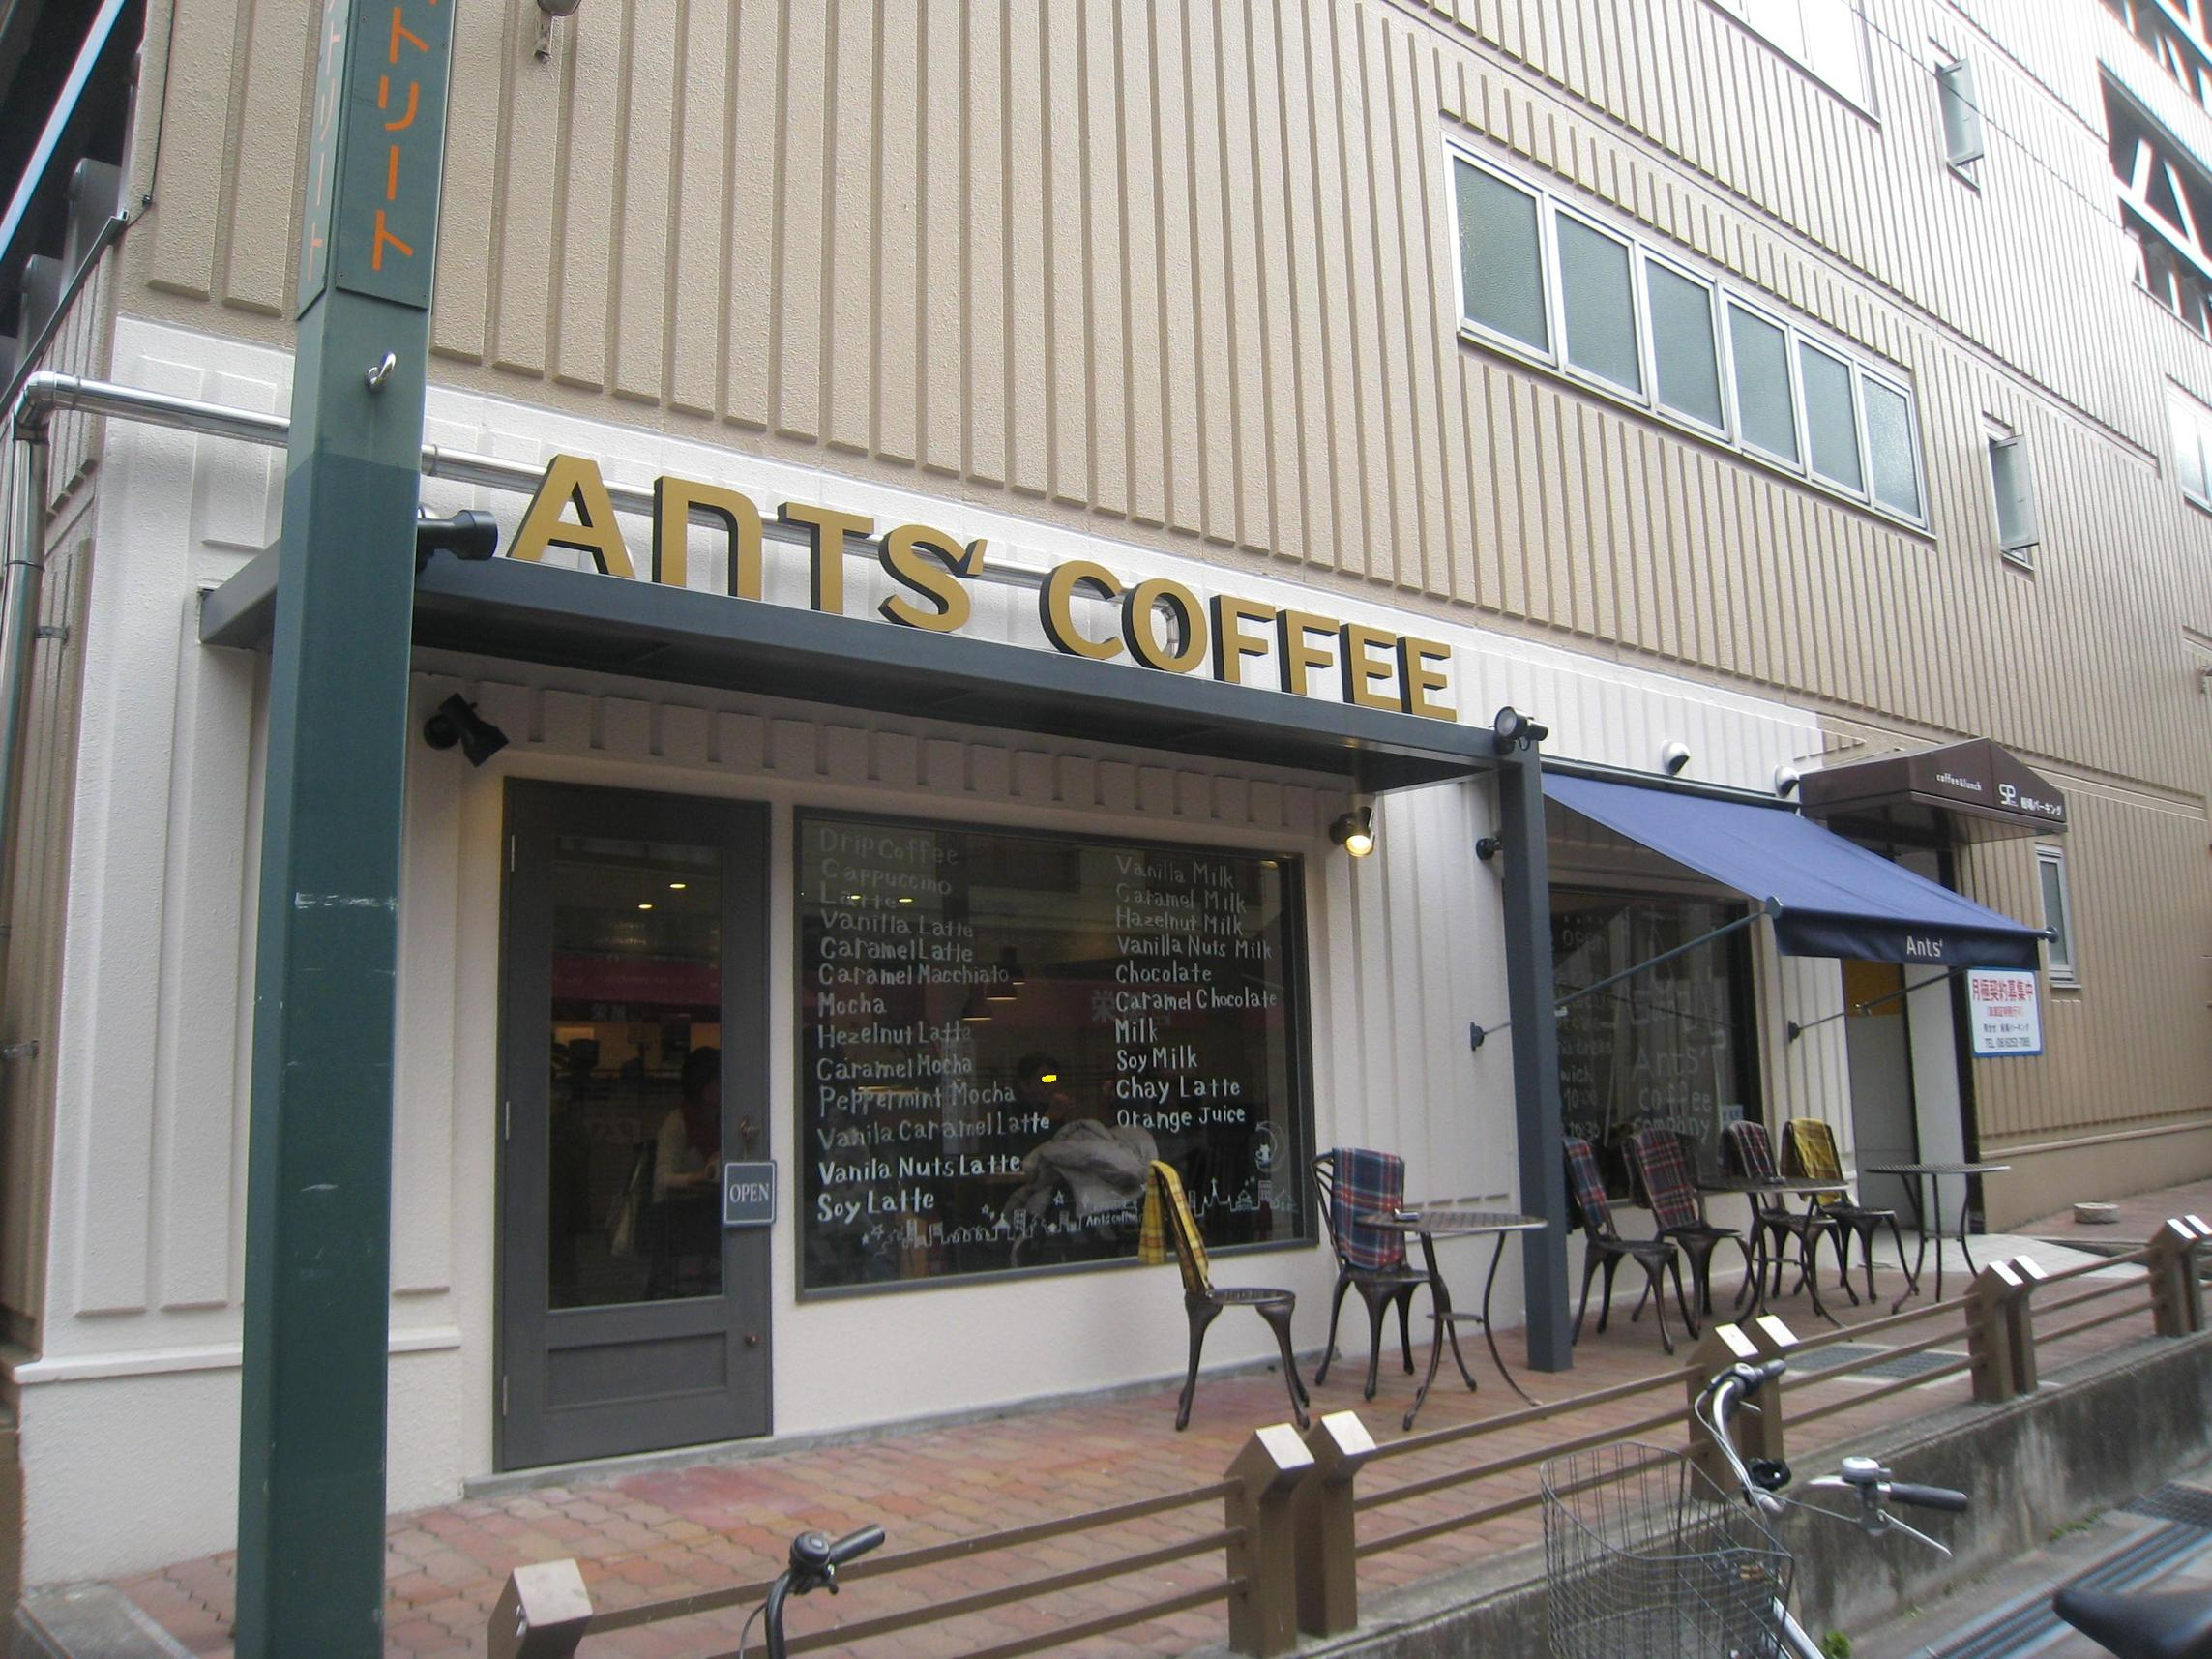 Ants' coffee company